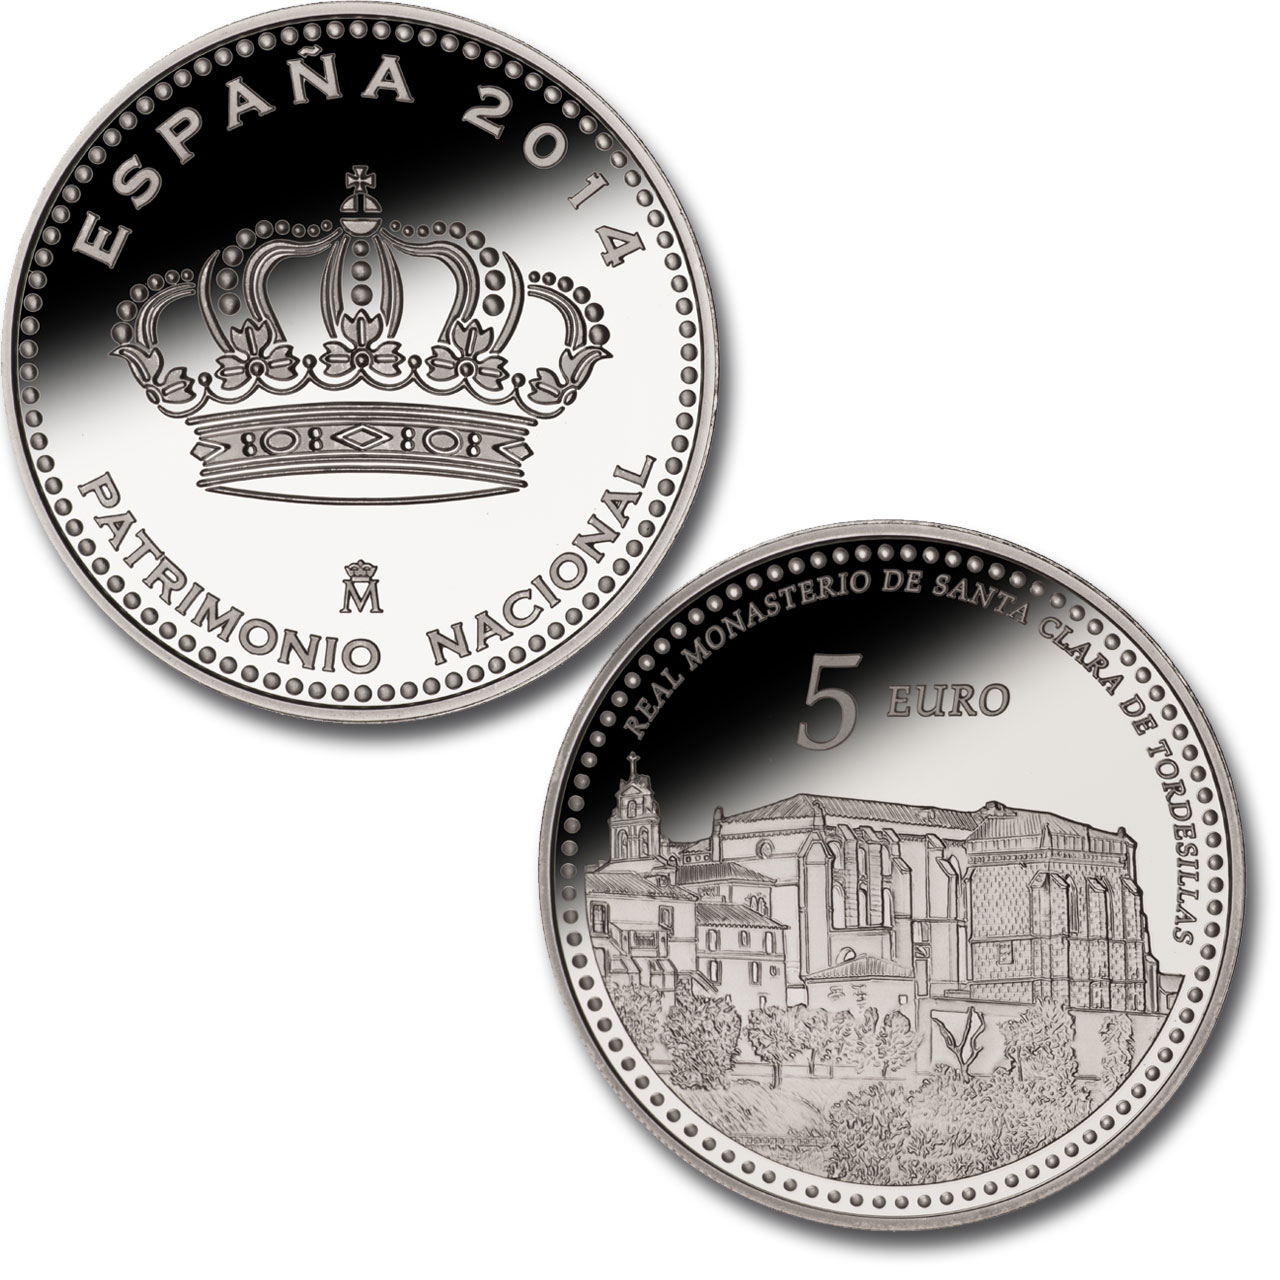 Royal Monastery of Santa Clara de Tordesillas – 4 reales silver. Click to see enlarged. Opens in new window. Abre en ventana nueva